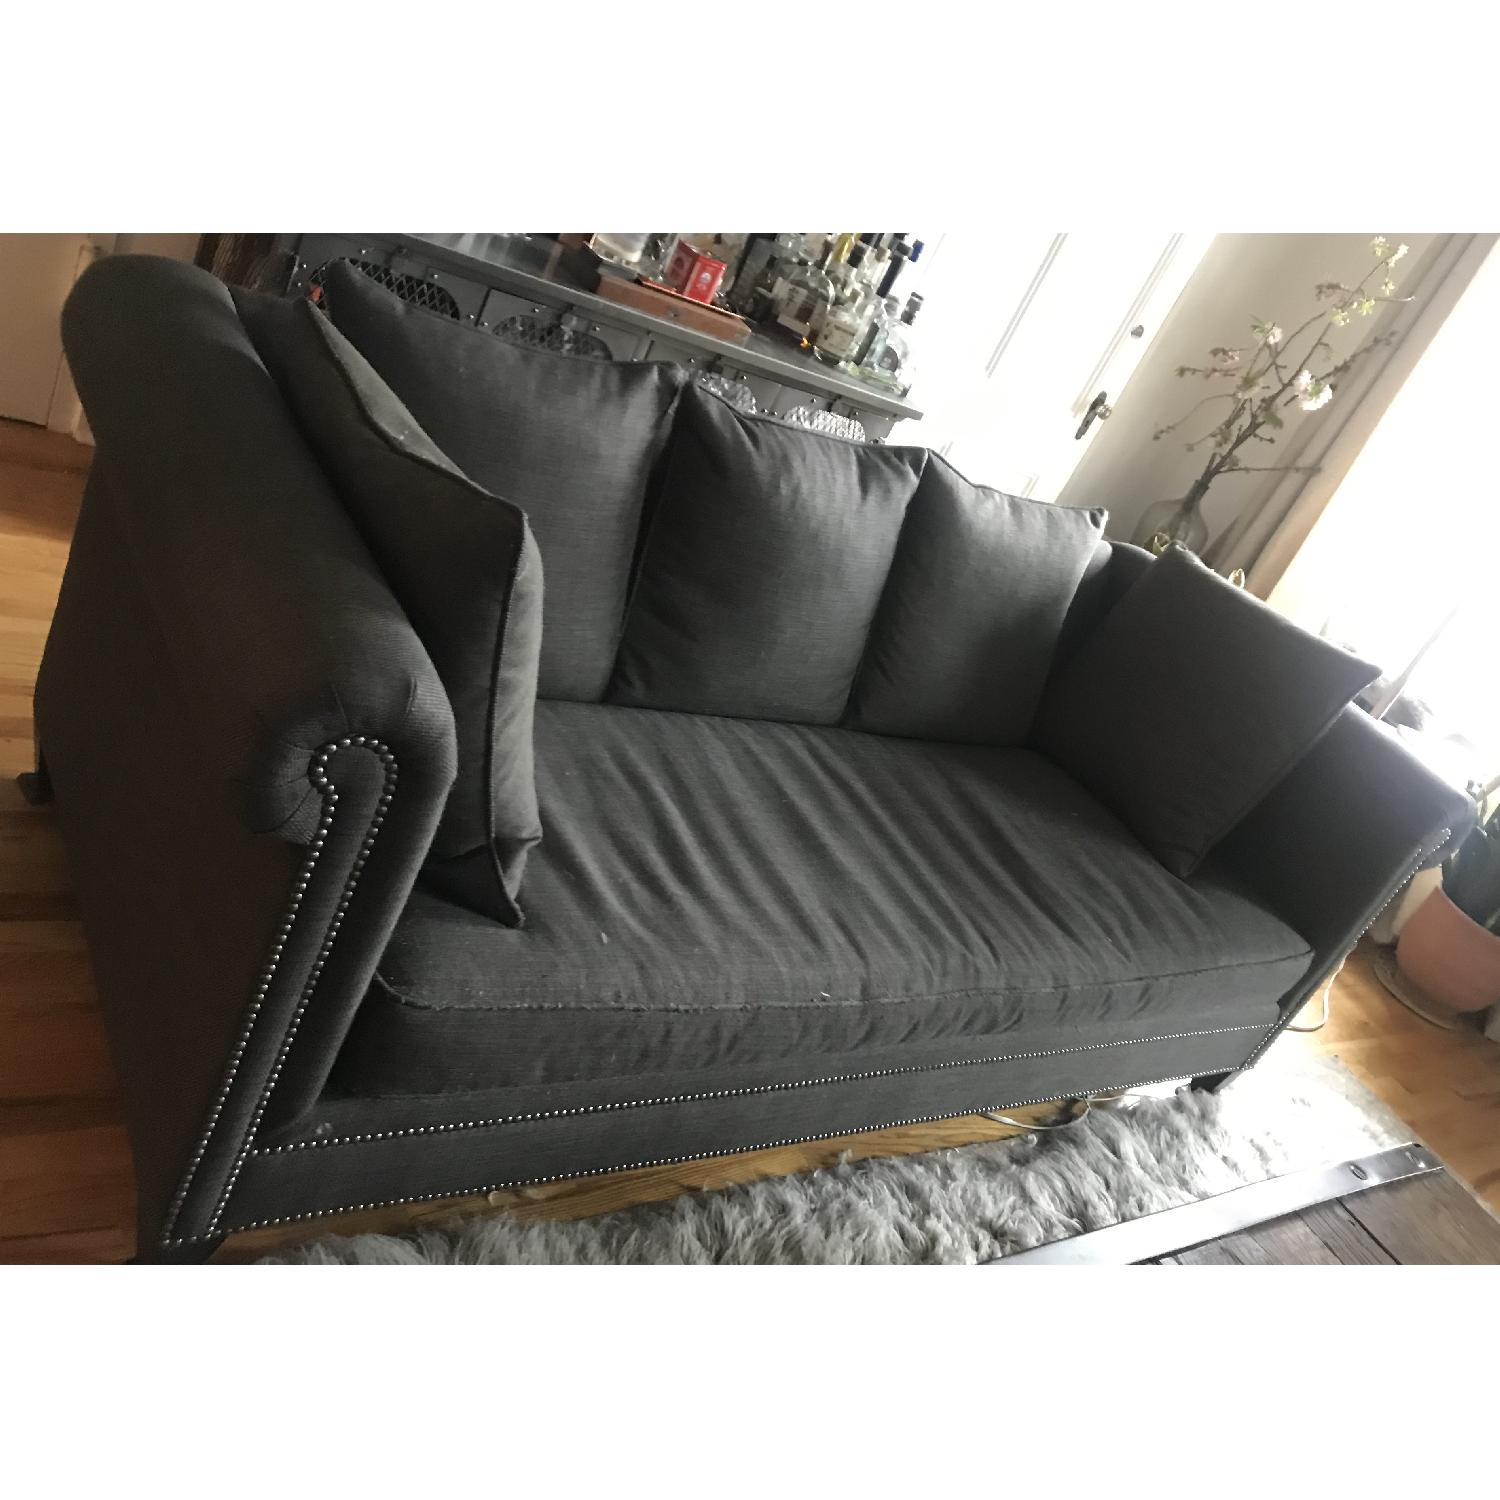 Crate & Barrel 3 Seater Down Filled Sofa - image-4